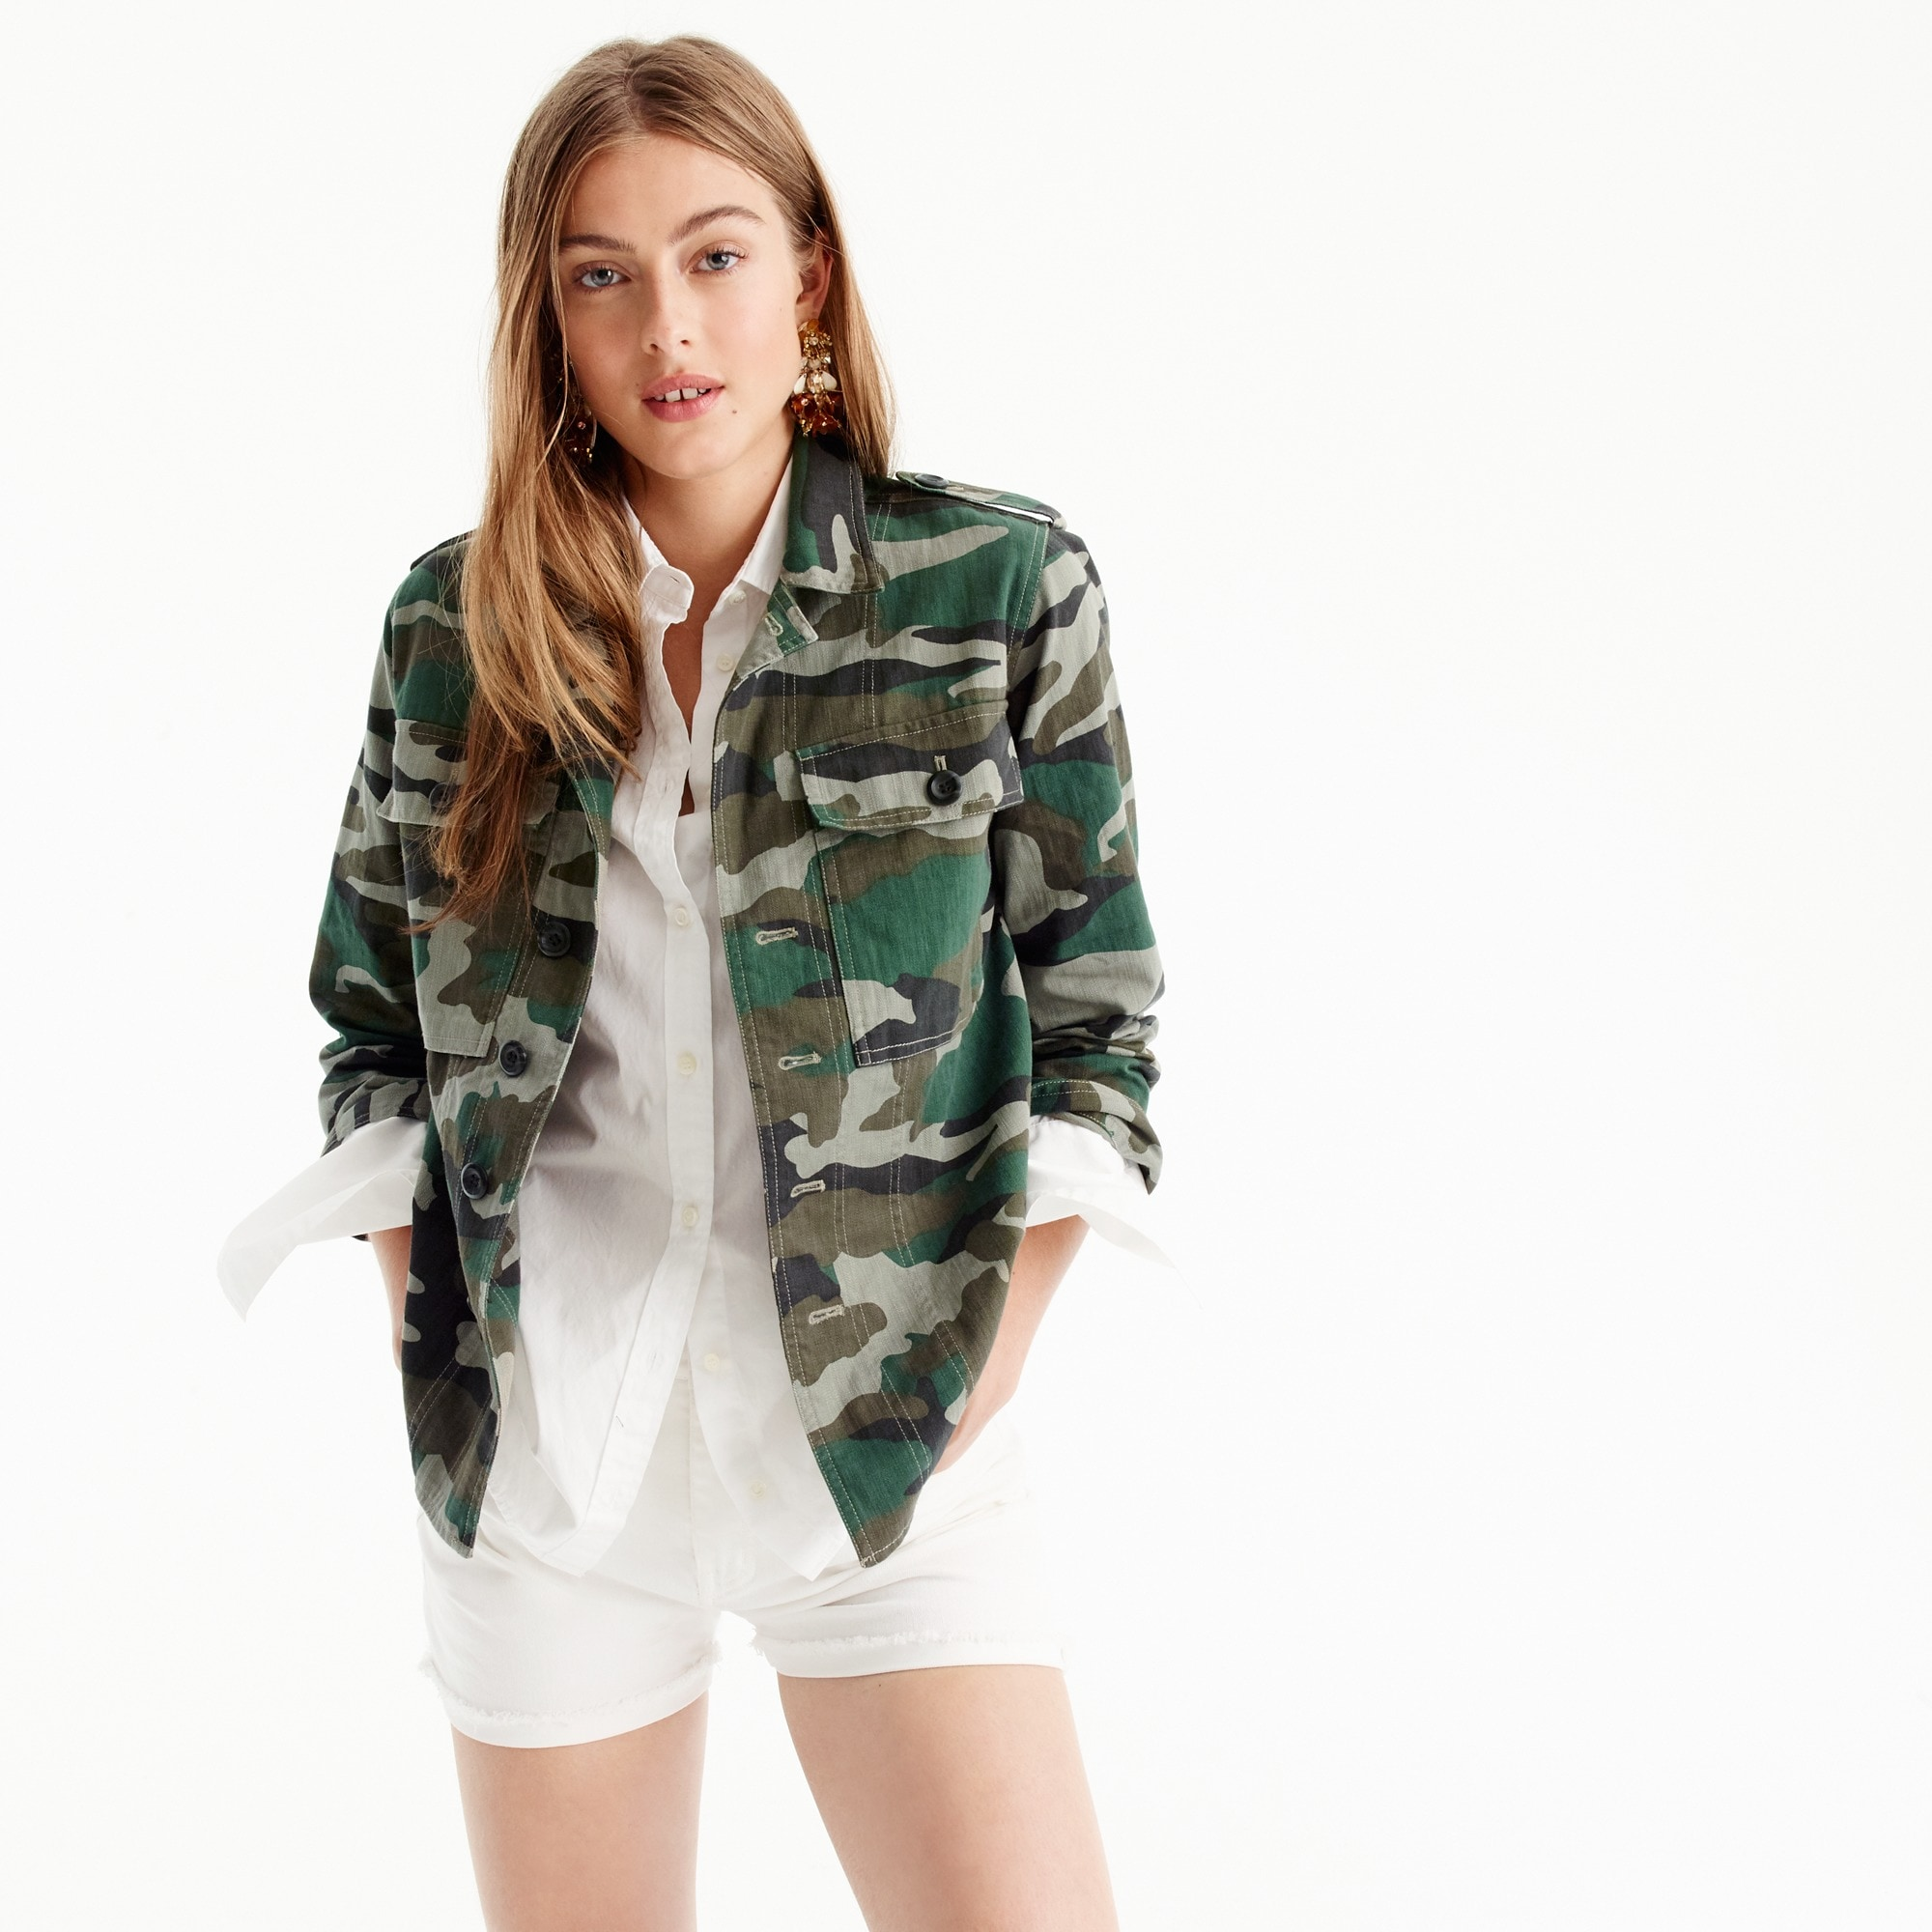 camouflage utility shirt-jacket : women button-ups